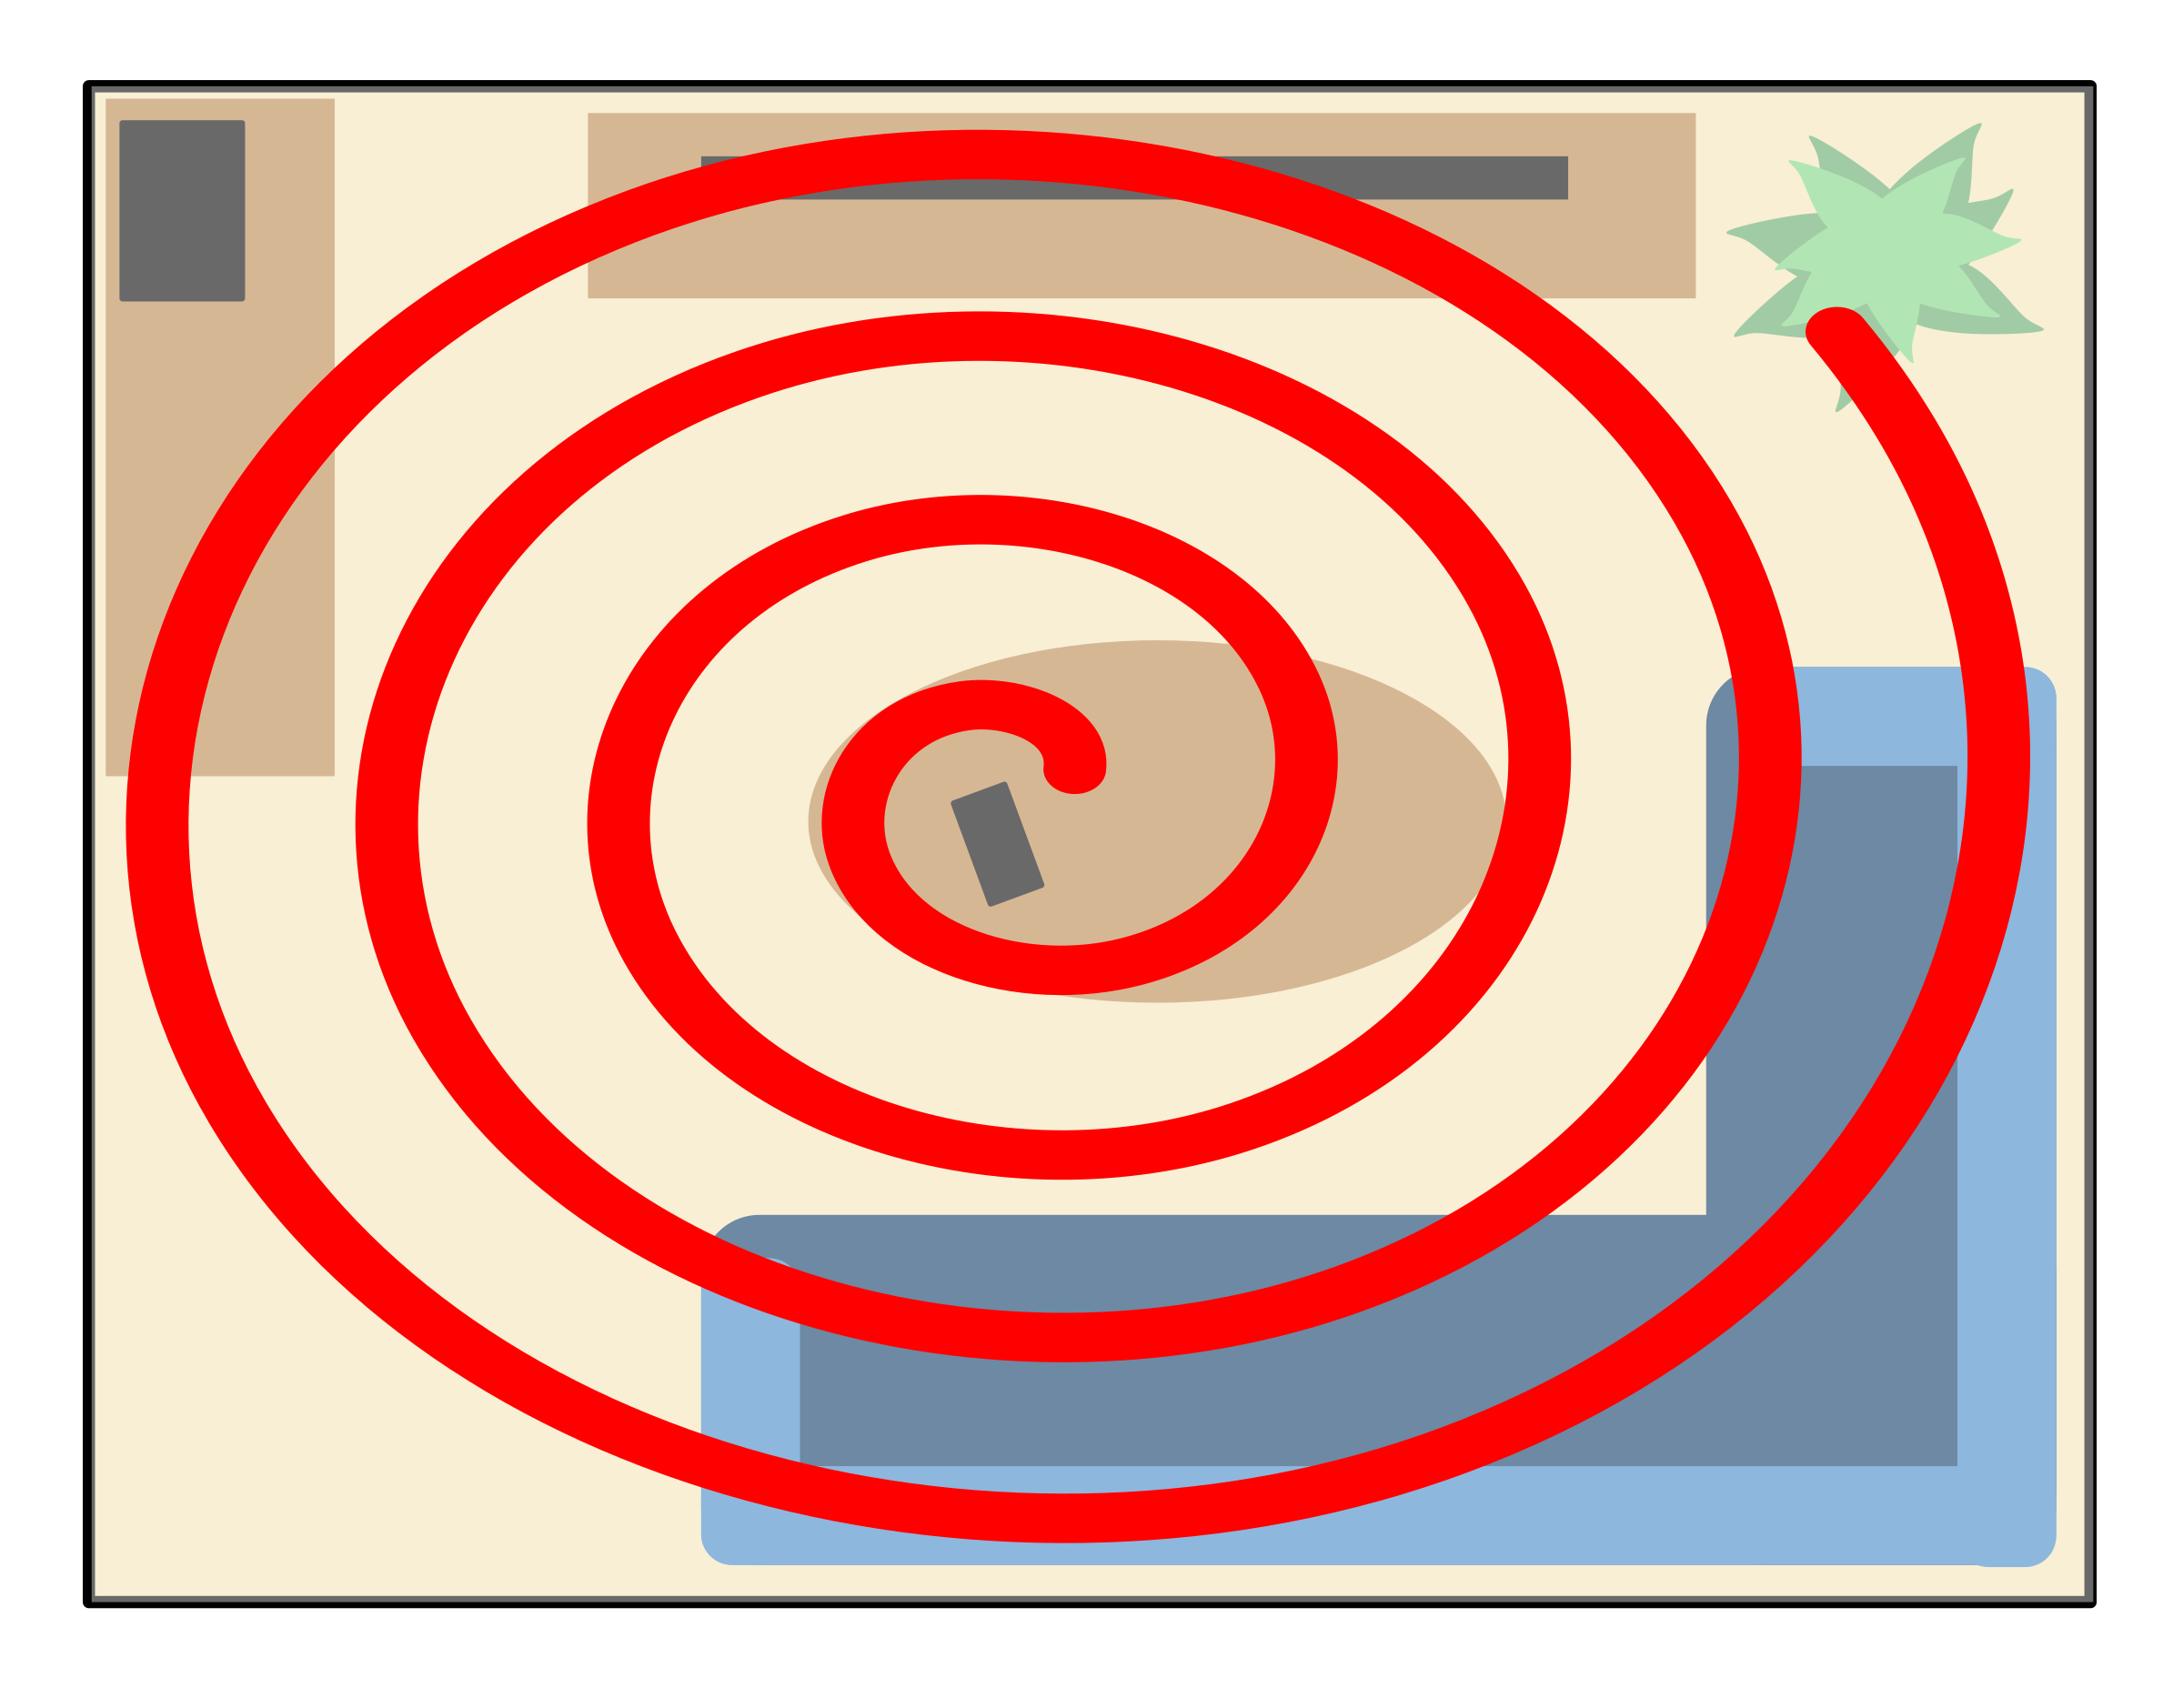 Spiral search pattern by Clon